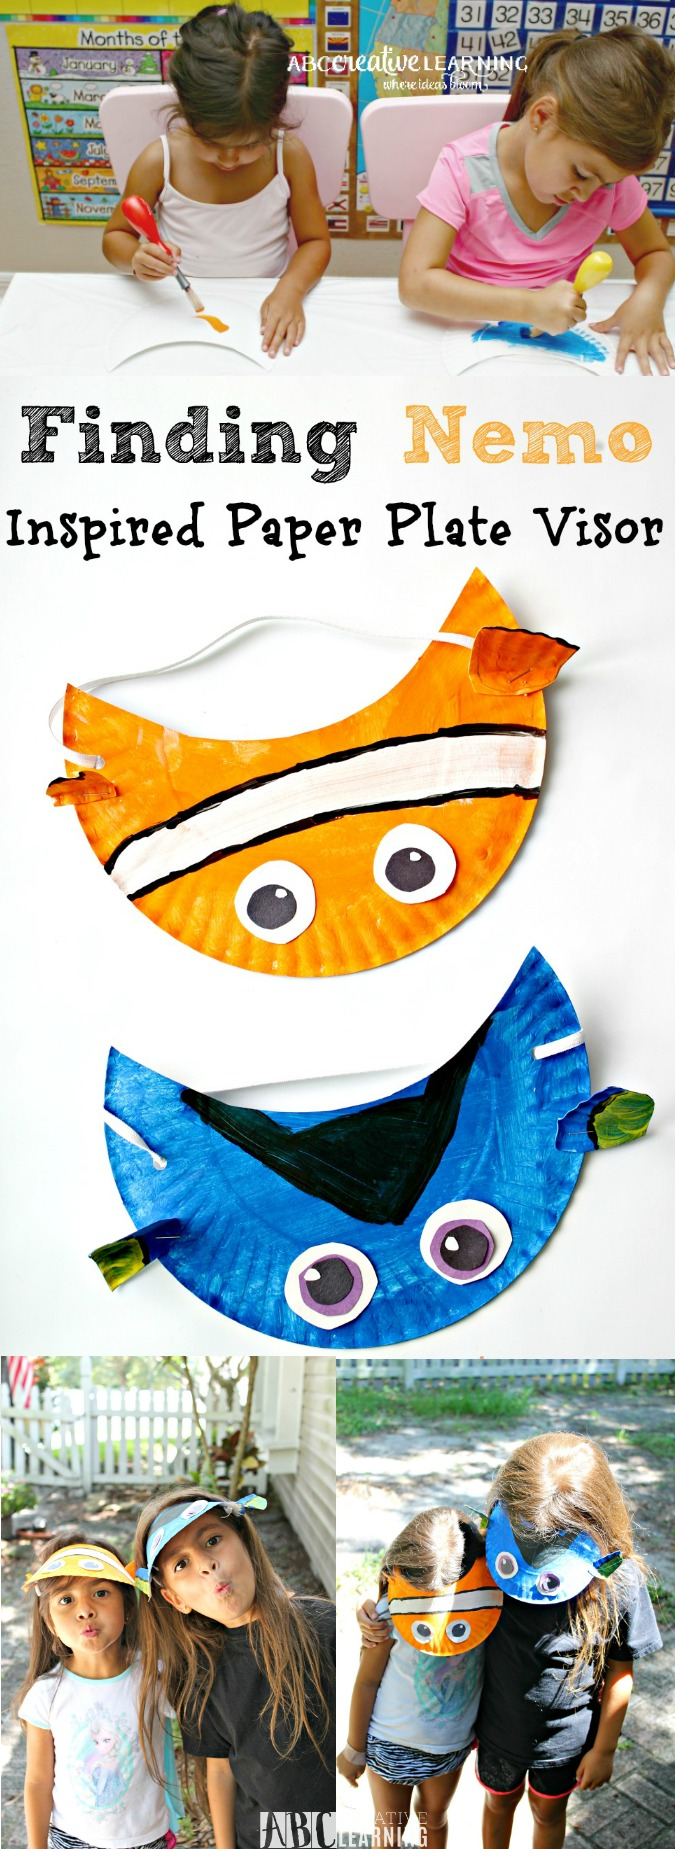 finding nemo movie essay example The film finding nemo is a prime example of two characters coming together in orientation to solve a conflict in the beginning of the movie there is a.